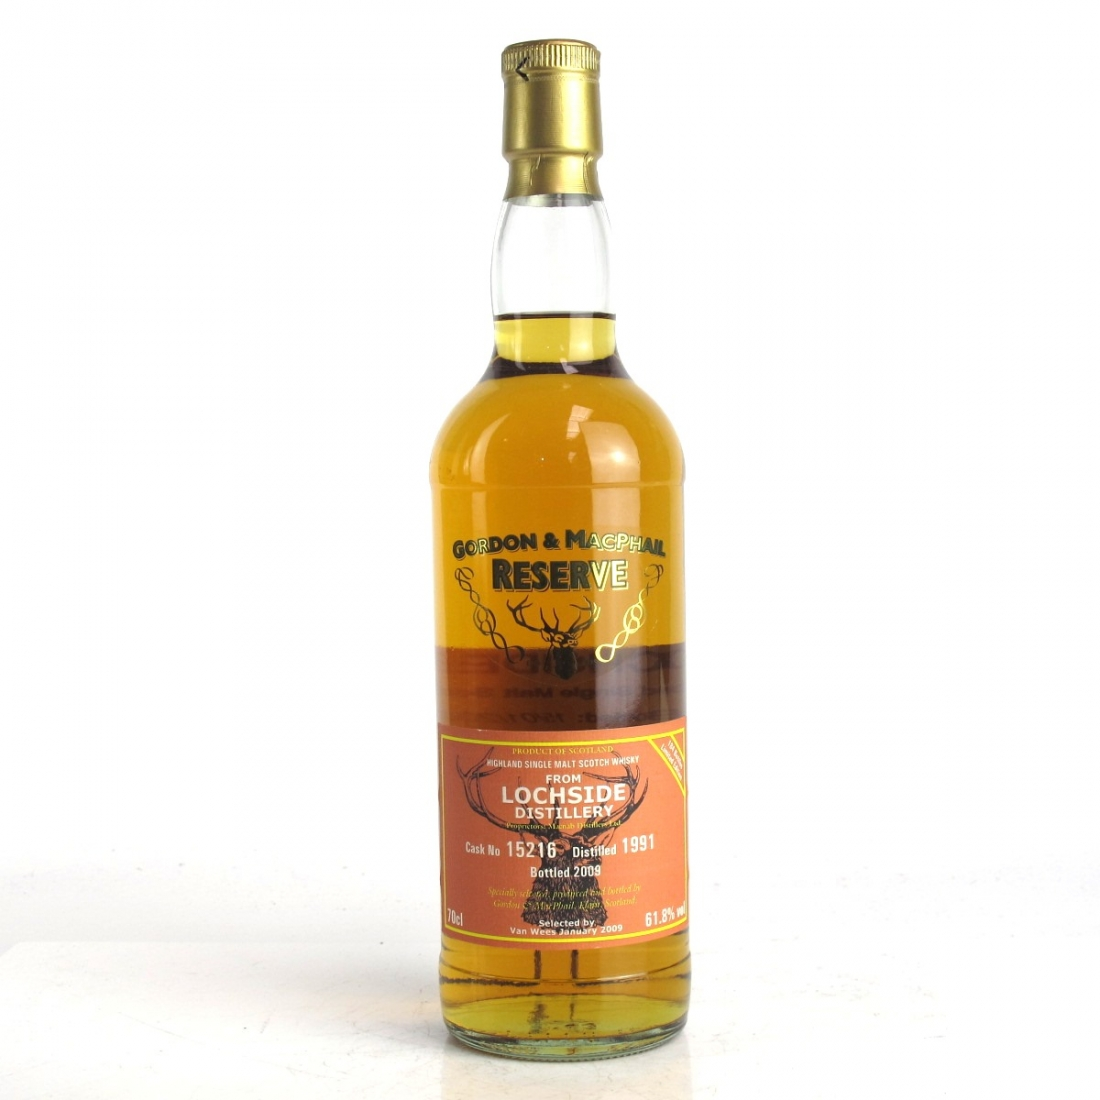 Lochside 1991 Gordon and MacPhail 17 Year Old / Van Wees Whisky Shop